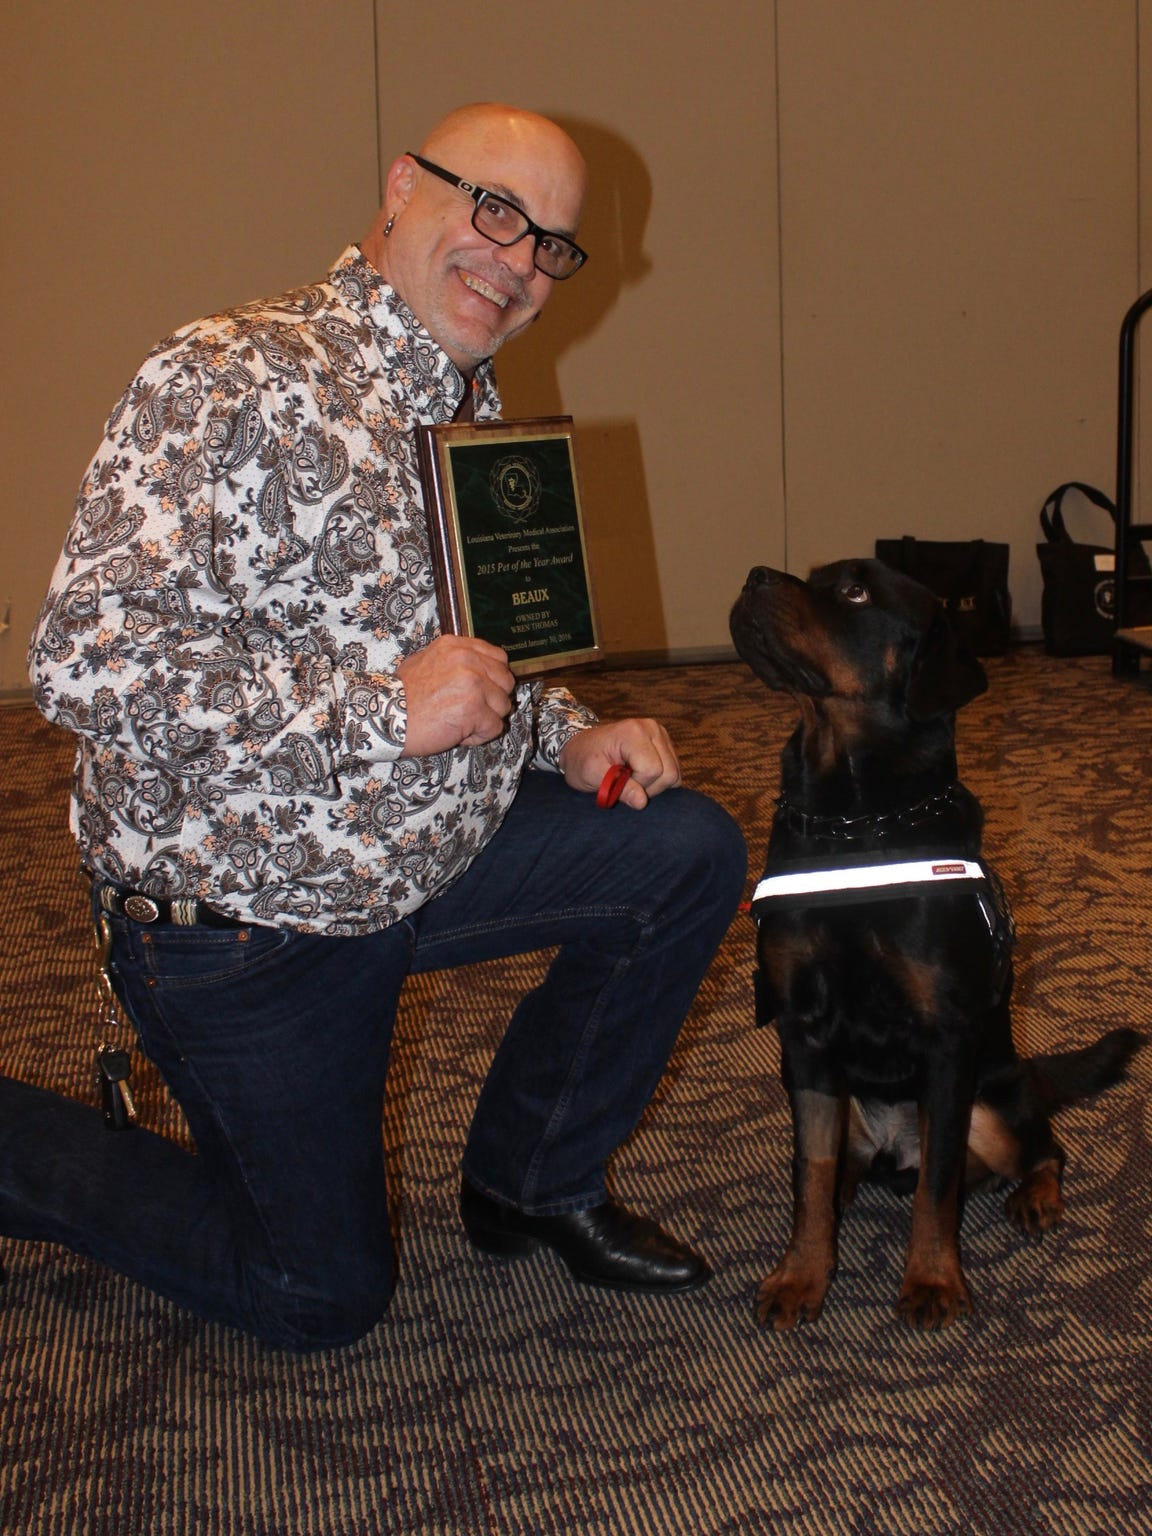 Wren Thomas' service dog, Beaux, was named Pet of the